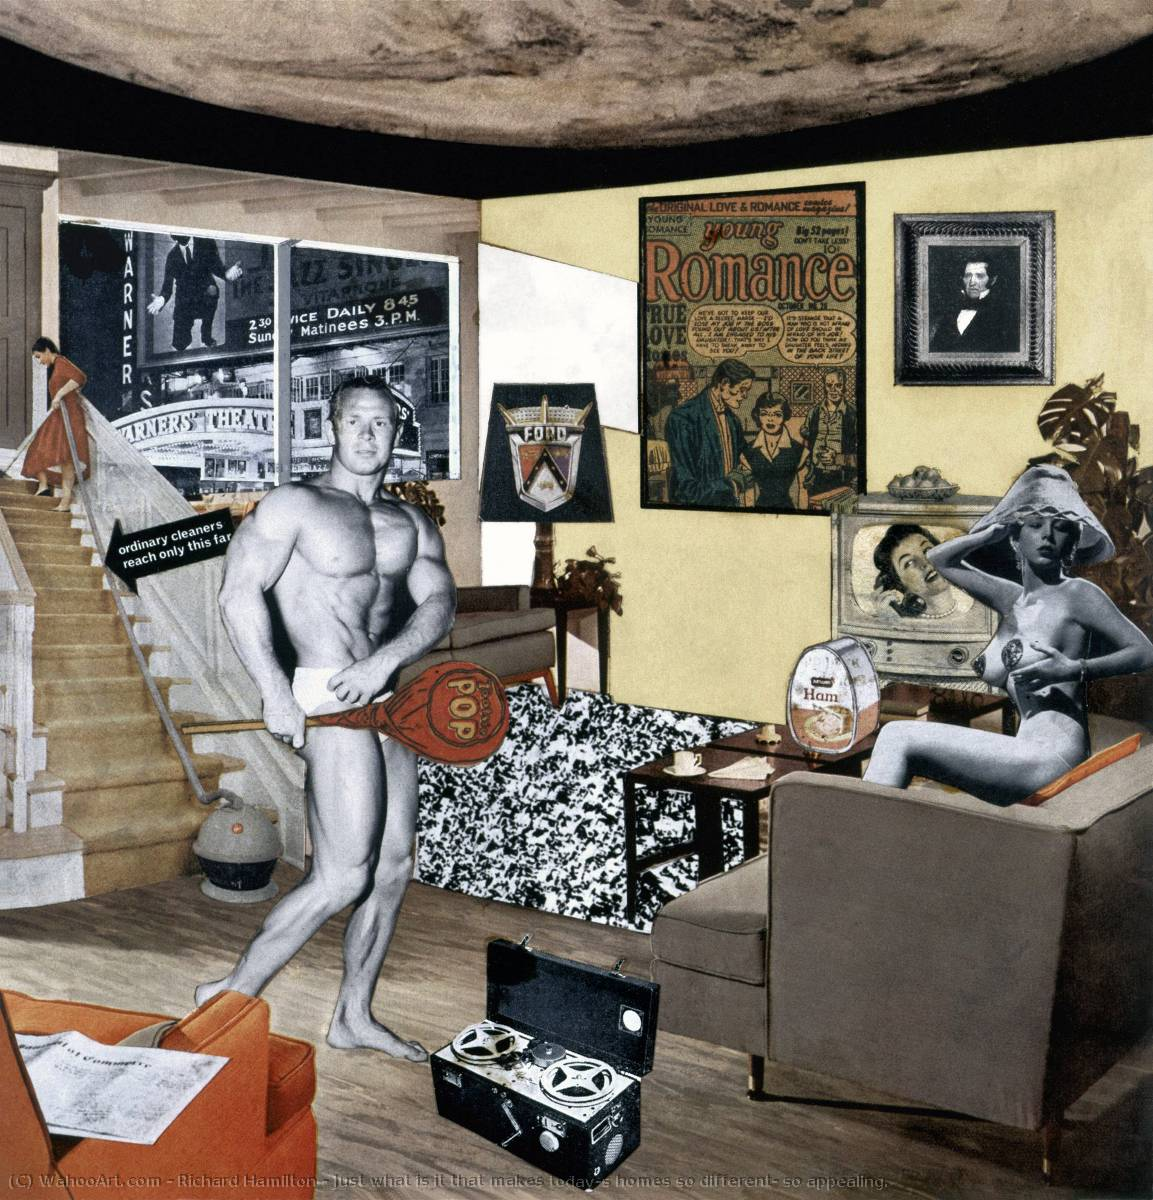 famous painting Just what is it that makes today's homes so different, so appealing. of Richard Hamilton